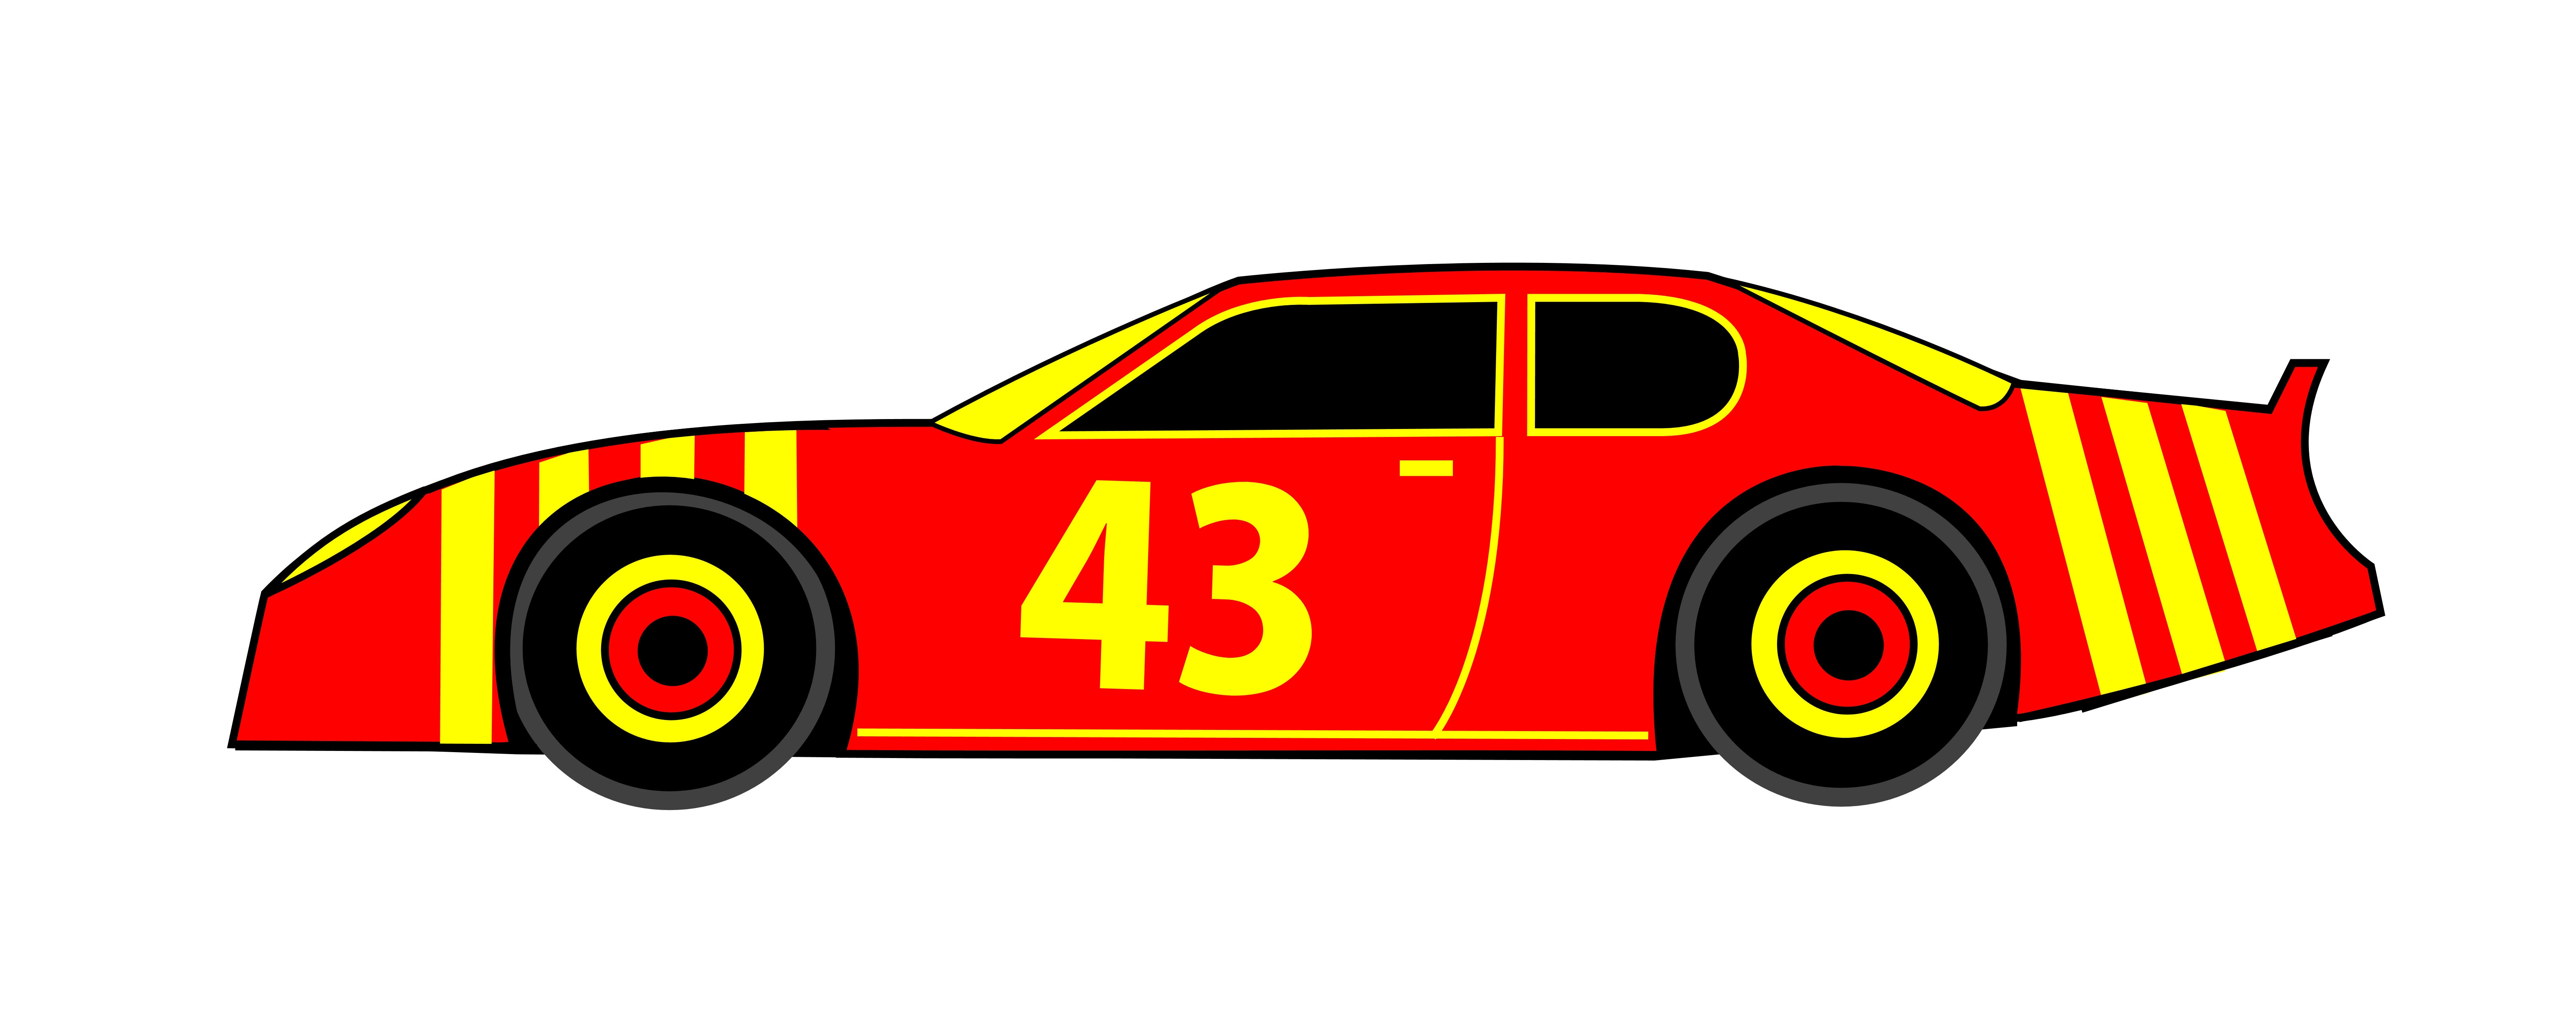 Yellow clipart race car. Silhouette at getdrawings com